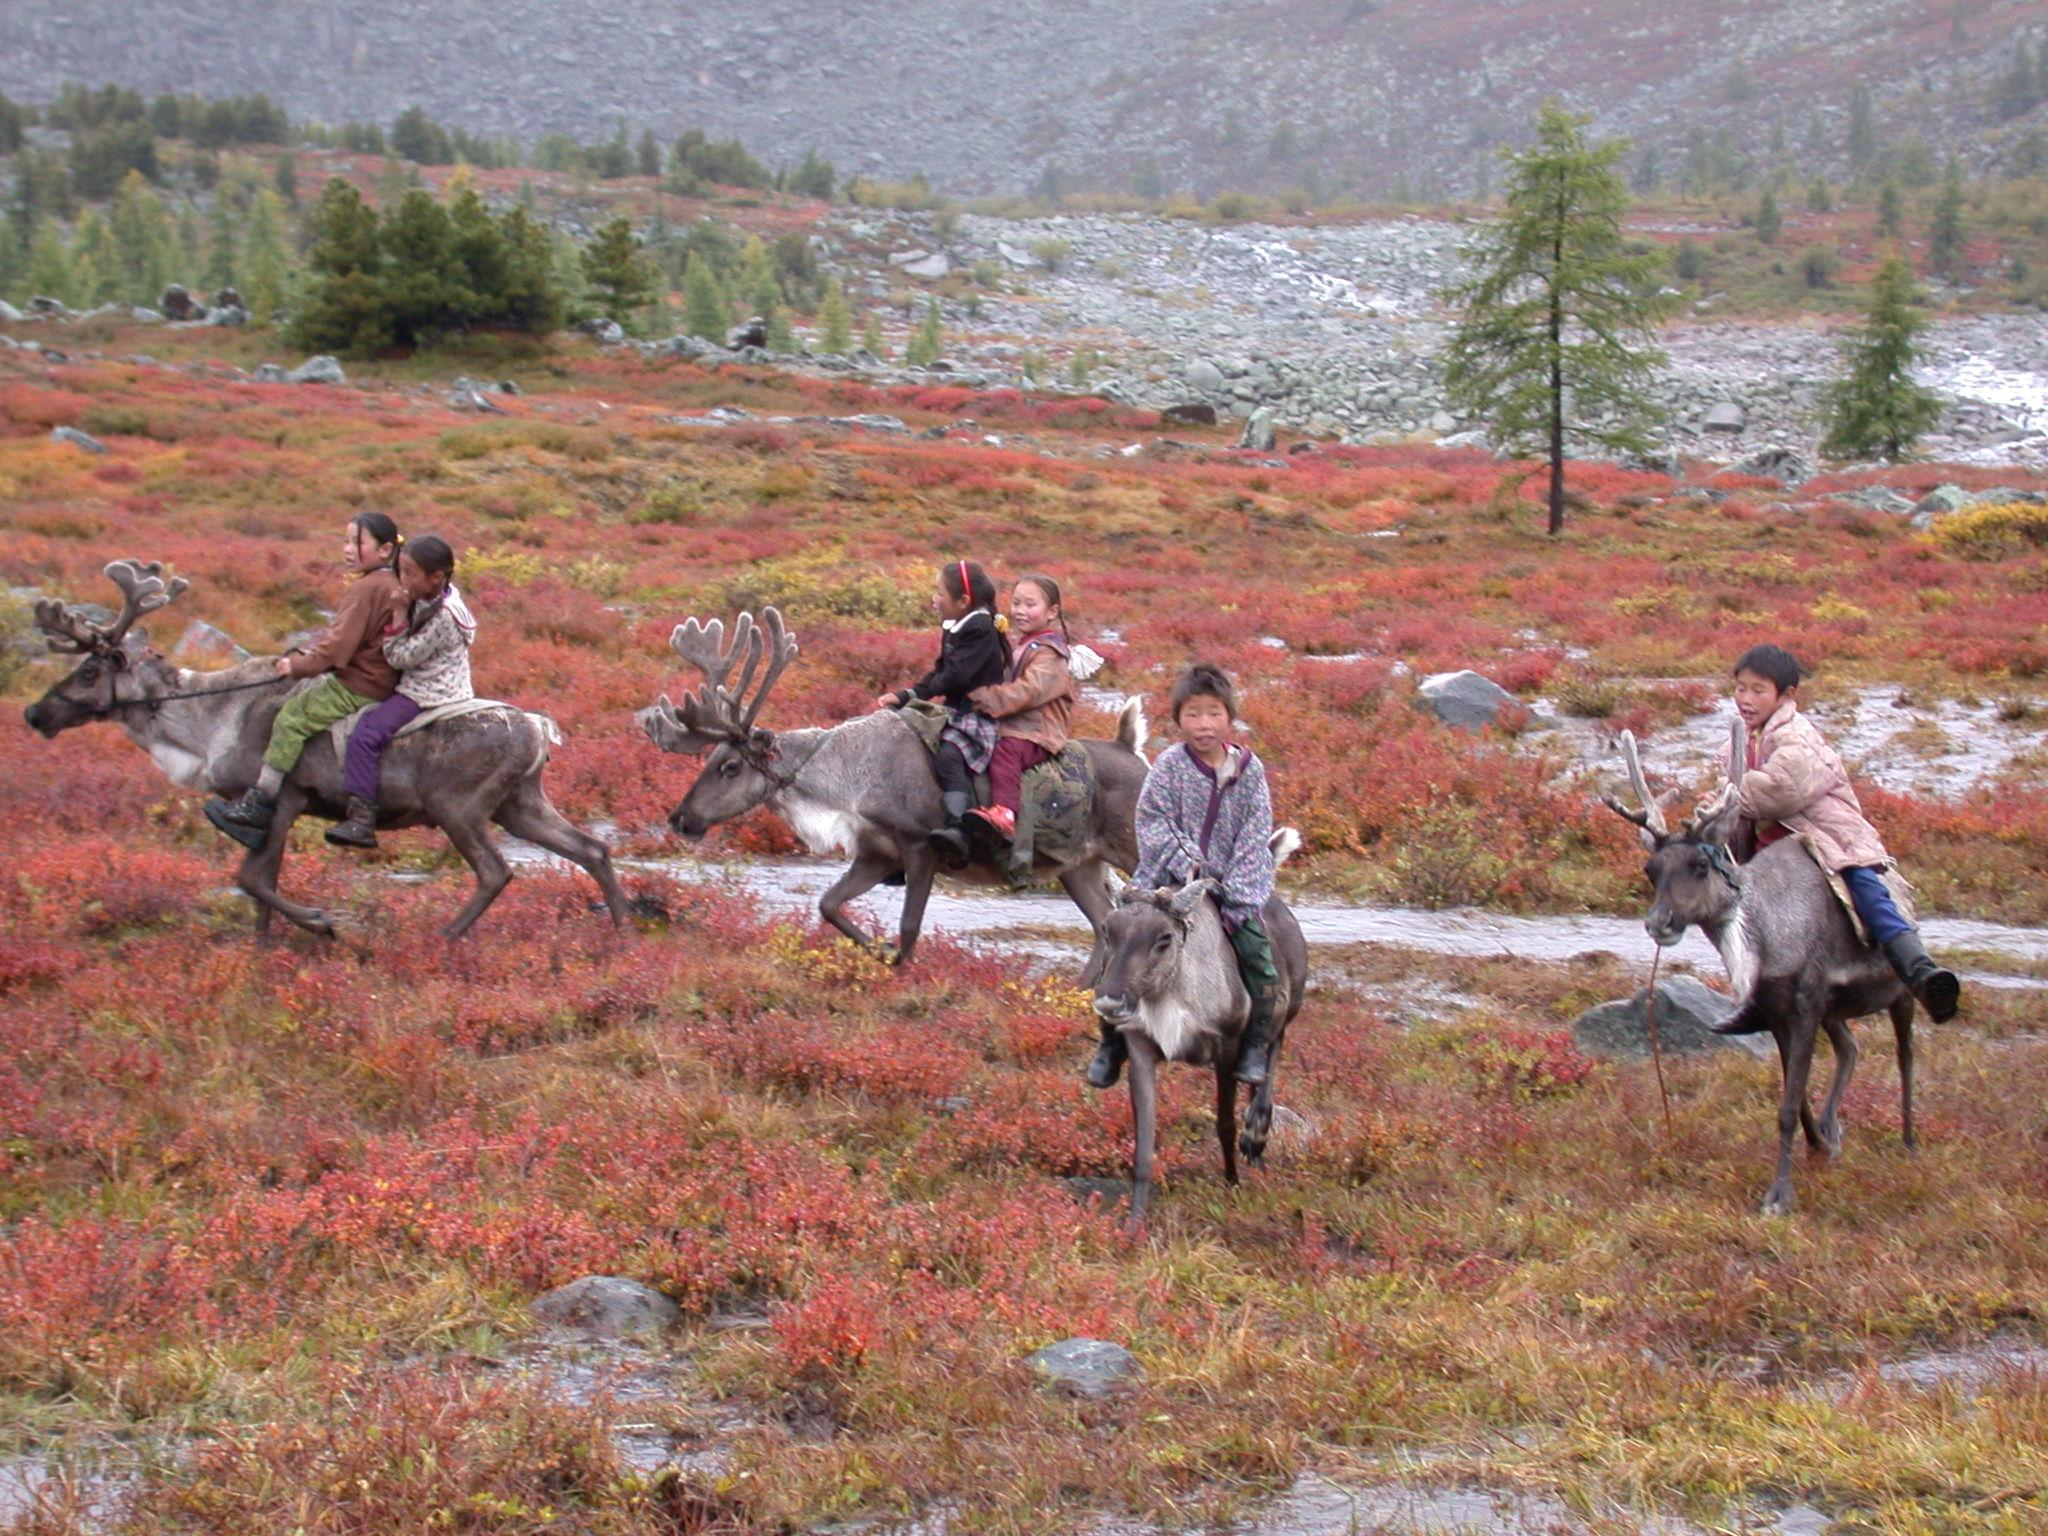 Tsaatan children riding reindeer in the fall pasture, Sarig gol, northern Mongolia, August 2003. Photo credit: Paula DePriest, Museum Conservation Institute, Smithsonian Institution.